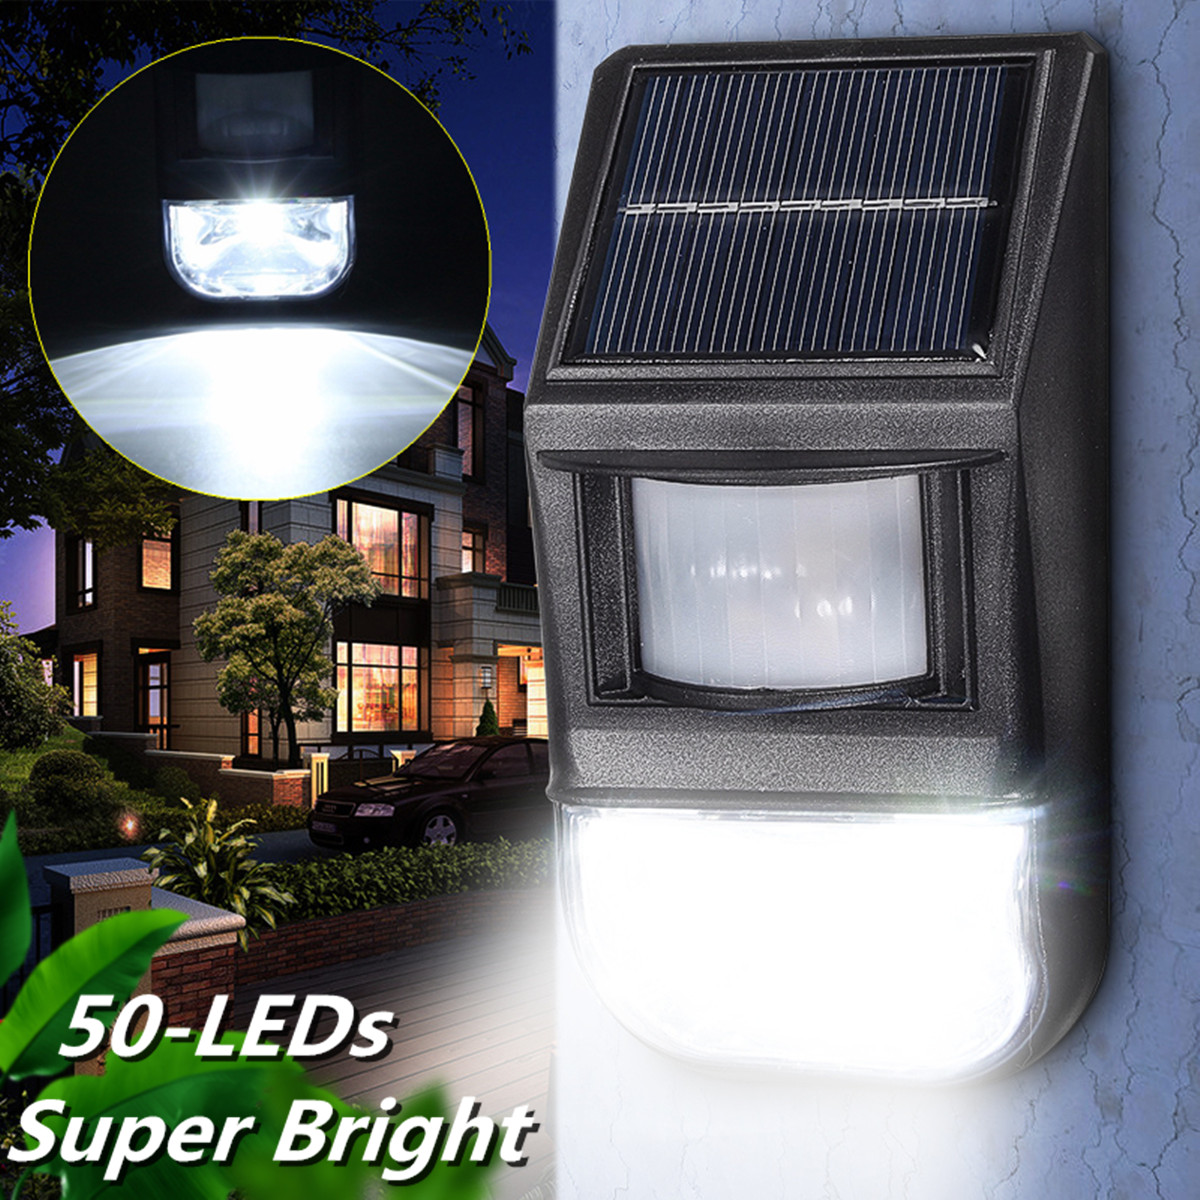 50LED Outdoor Wall Lights PIR Solar Powered Motion Sensor Waterproof Auto ON/OFF Security Night Light For Garden Path Landscape Fence Driveway Garage Lamp